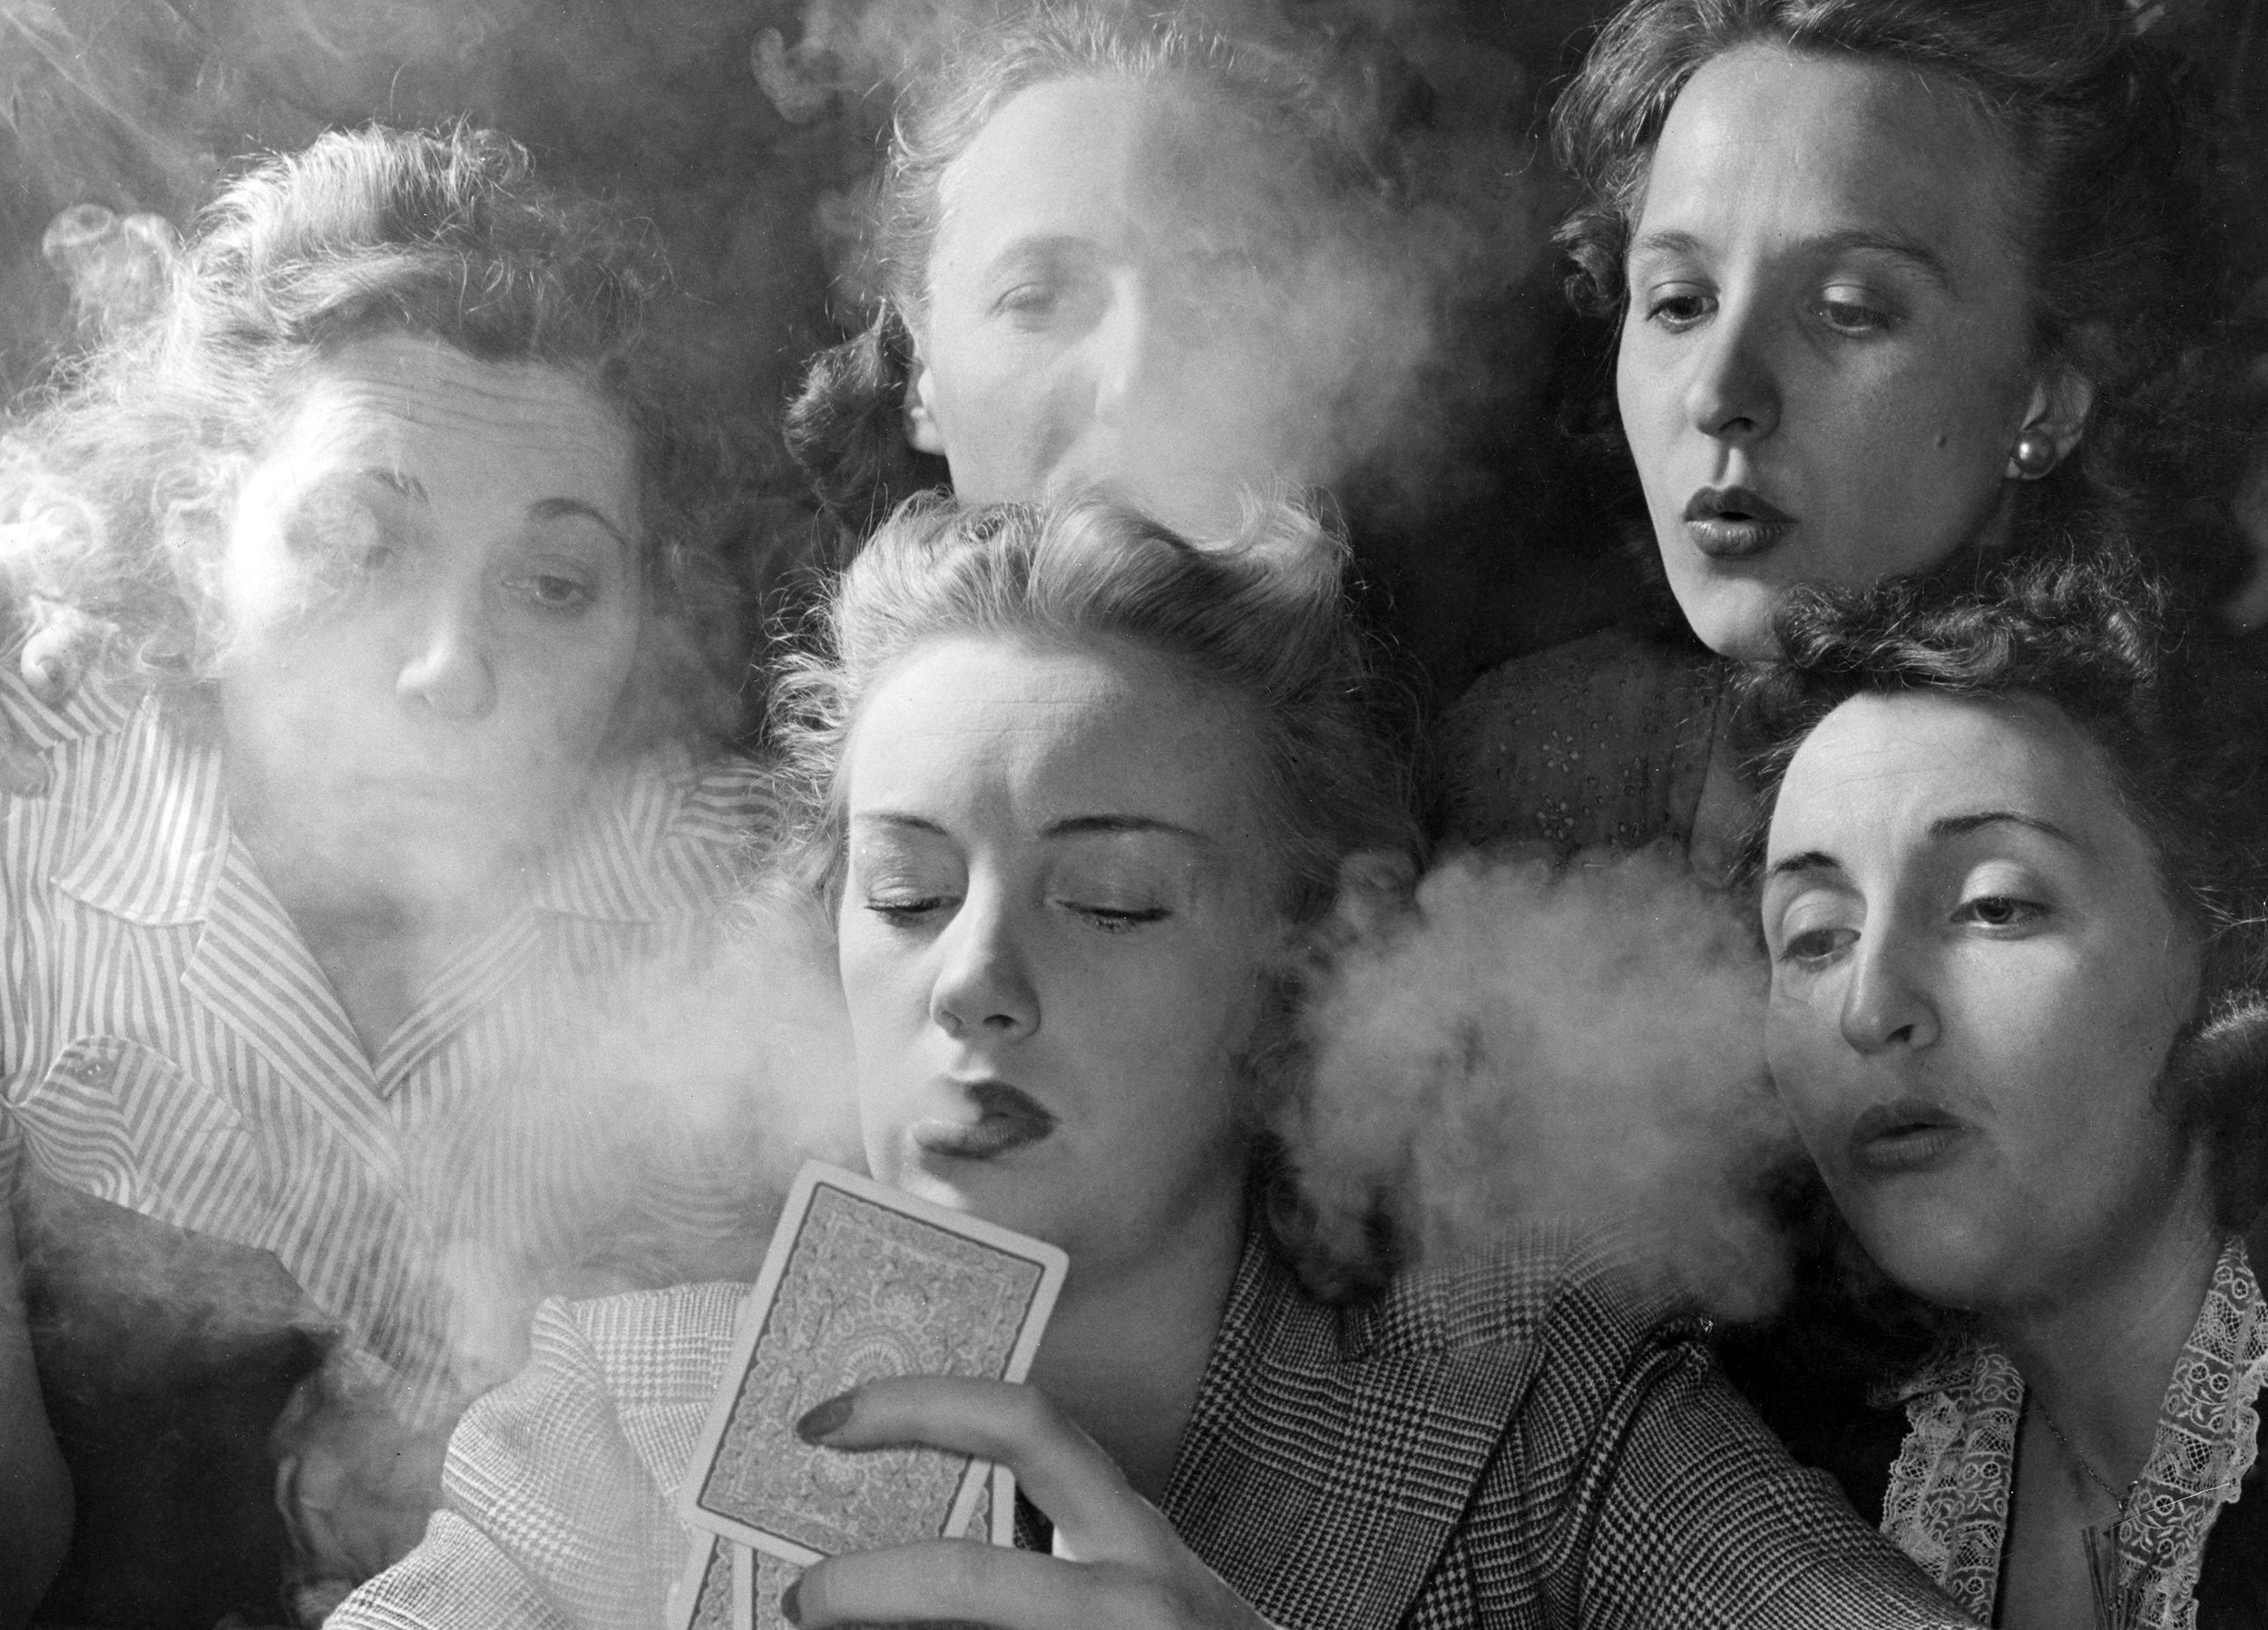 Members of the Young Women's Republican Club of Milford, Connecticut, play poker and smoke